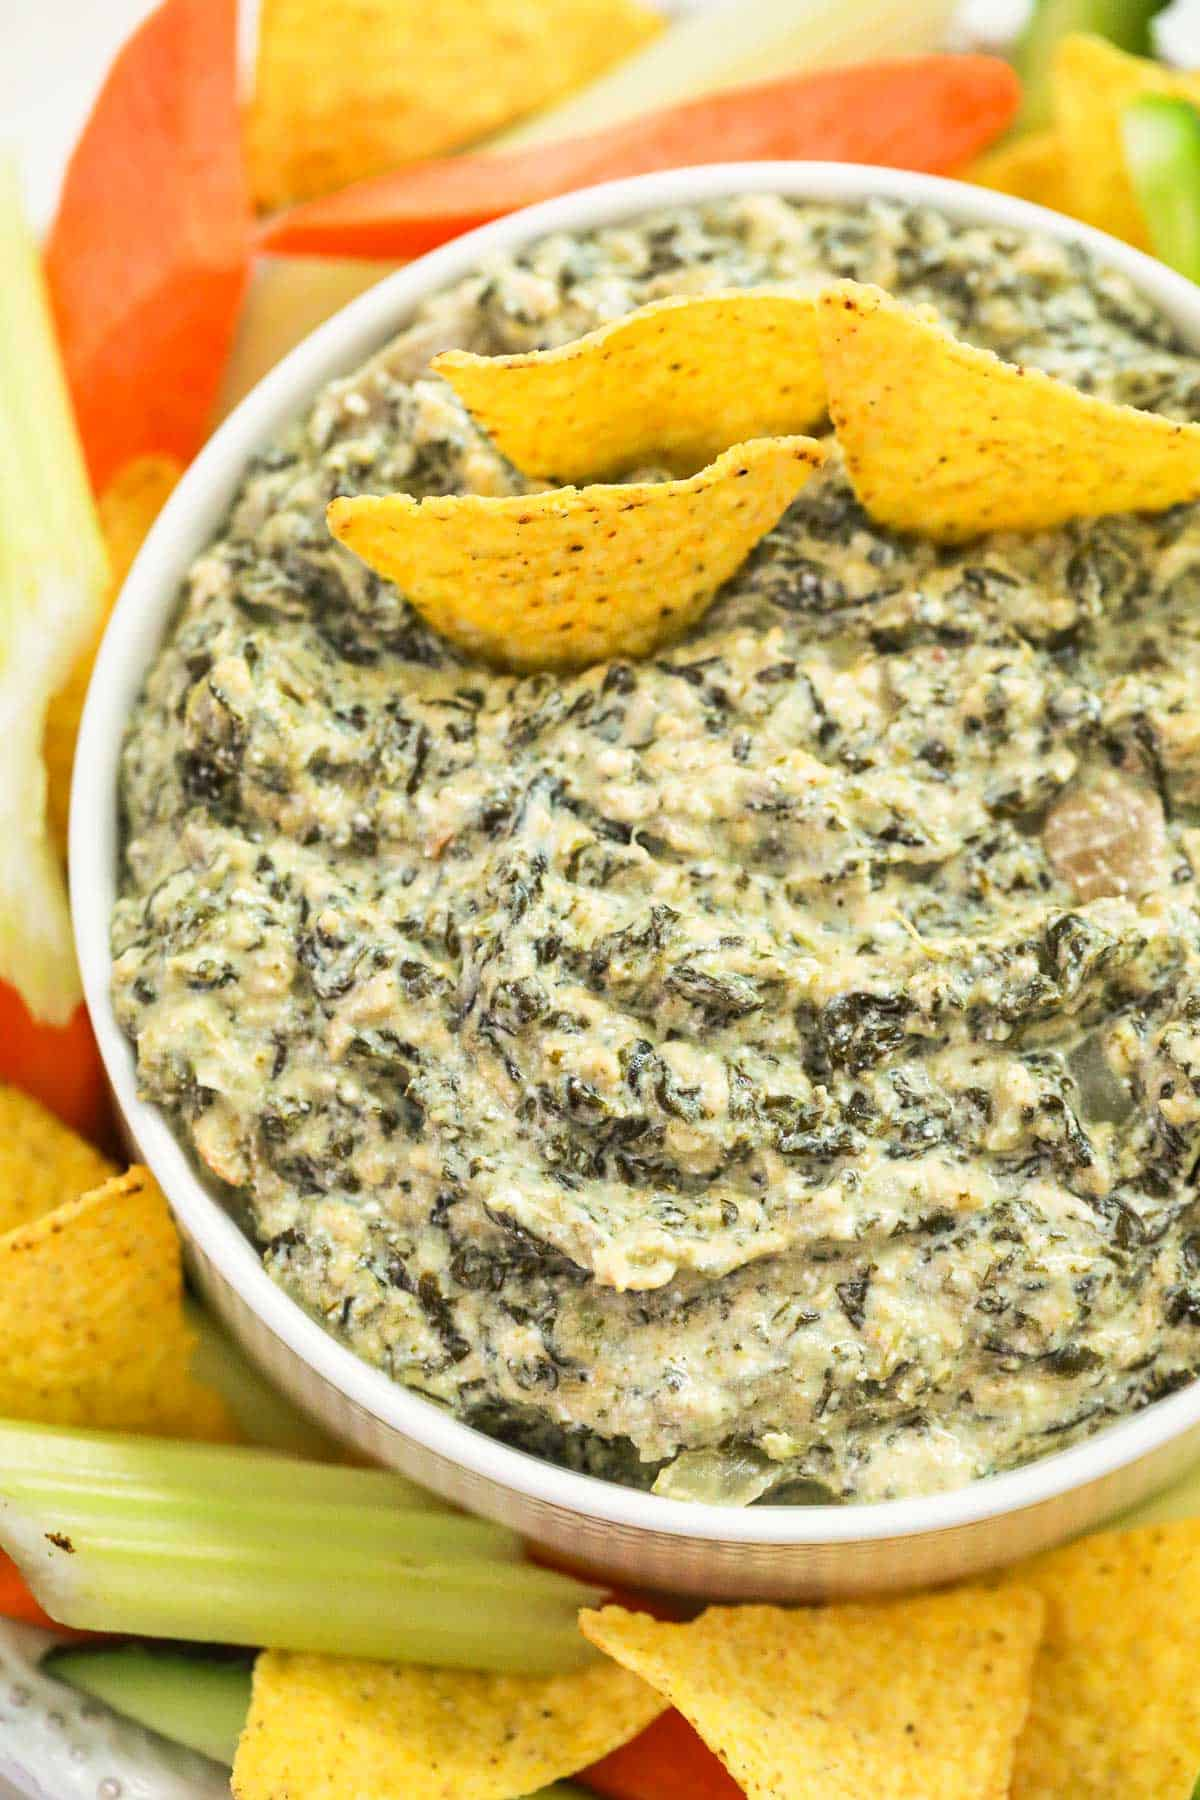 a bowl full of spinach artichoke dip with tortilla chips on the side